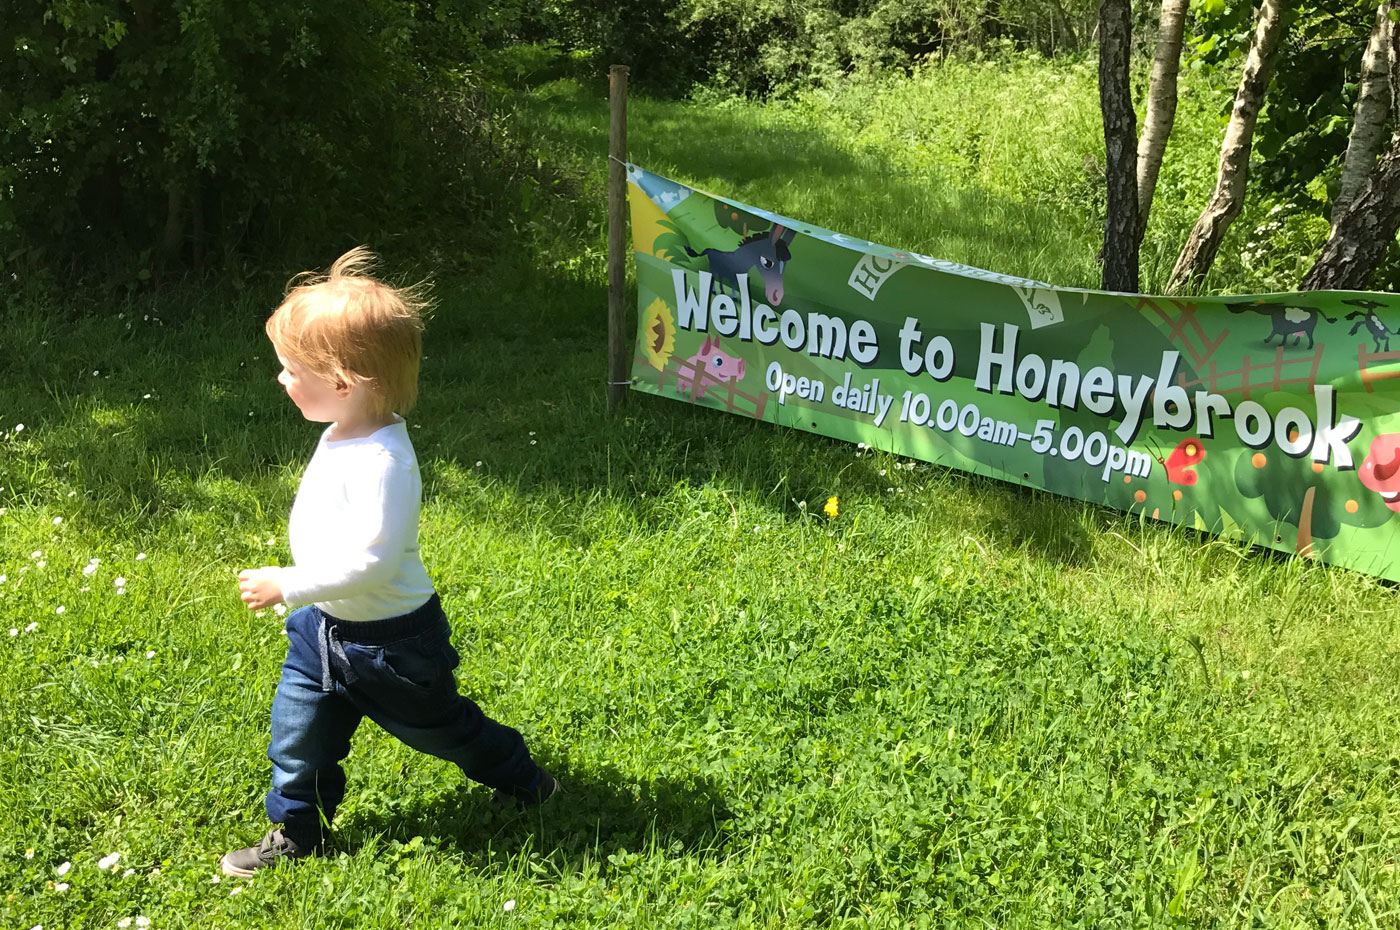 A Sunday Trip to Honeybrook Farm